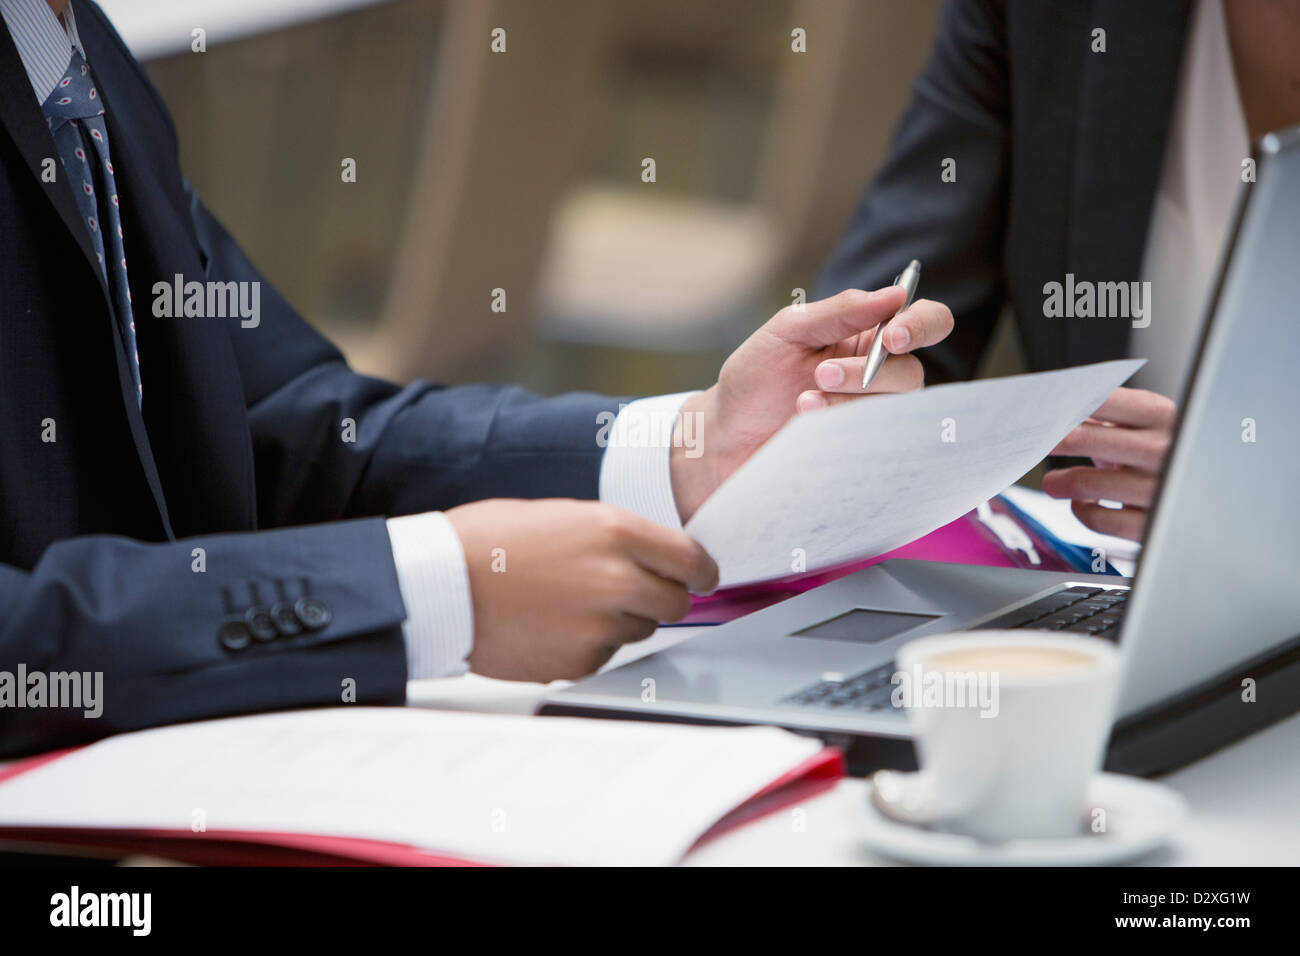 Close up of business people reviewing paperwork at cafe - Stock Image